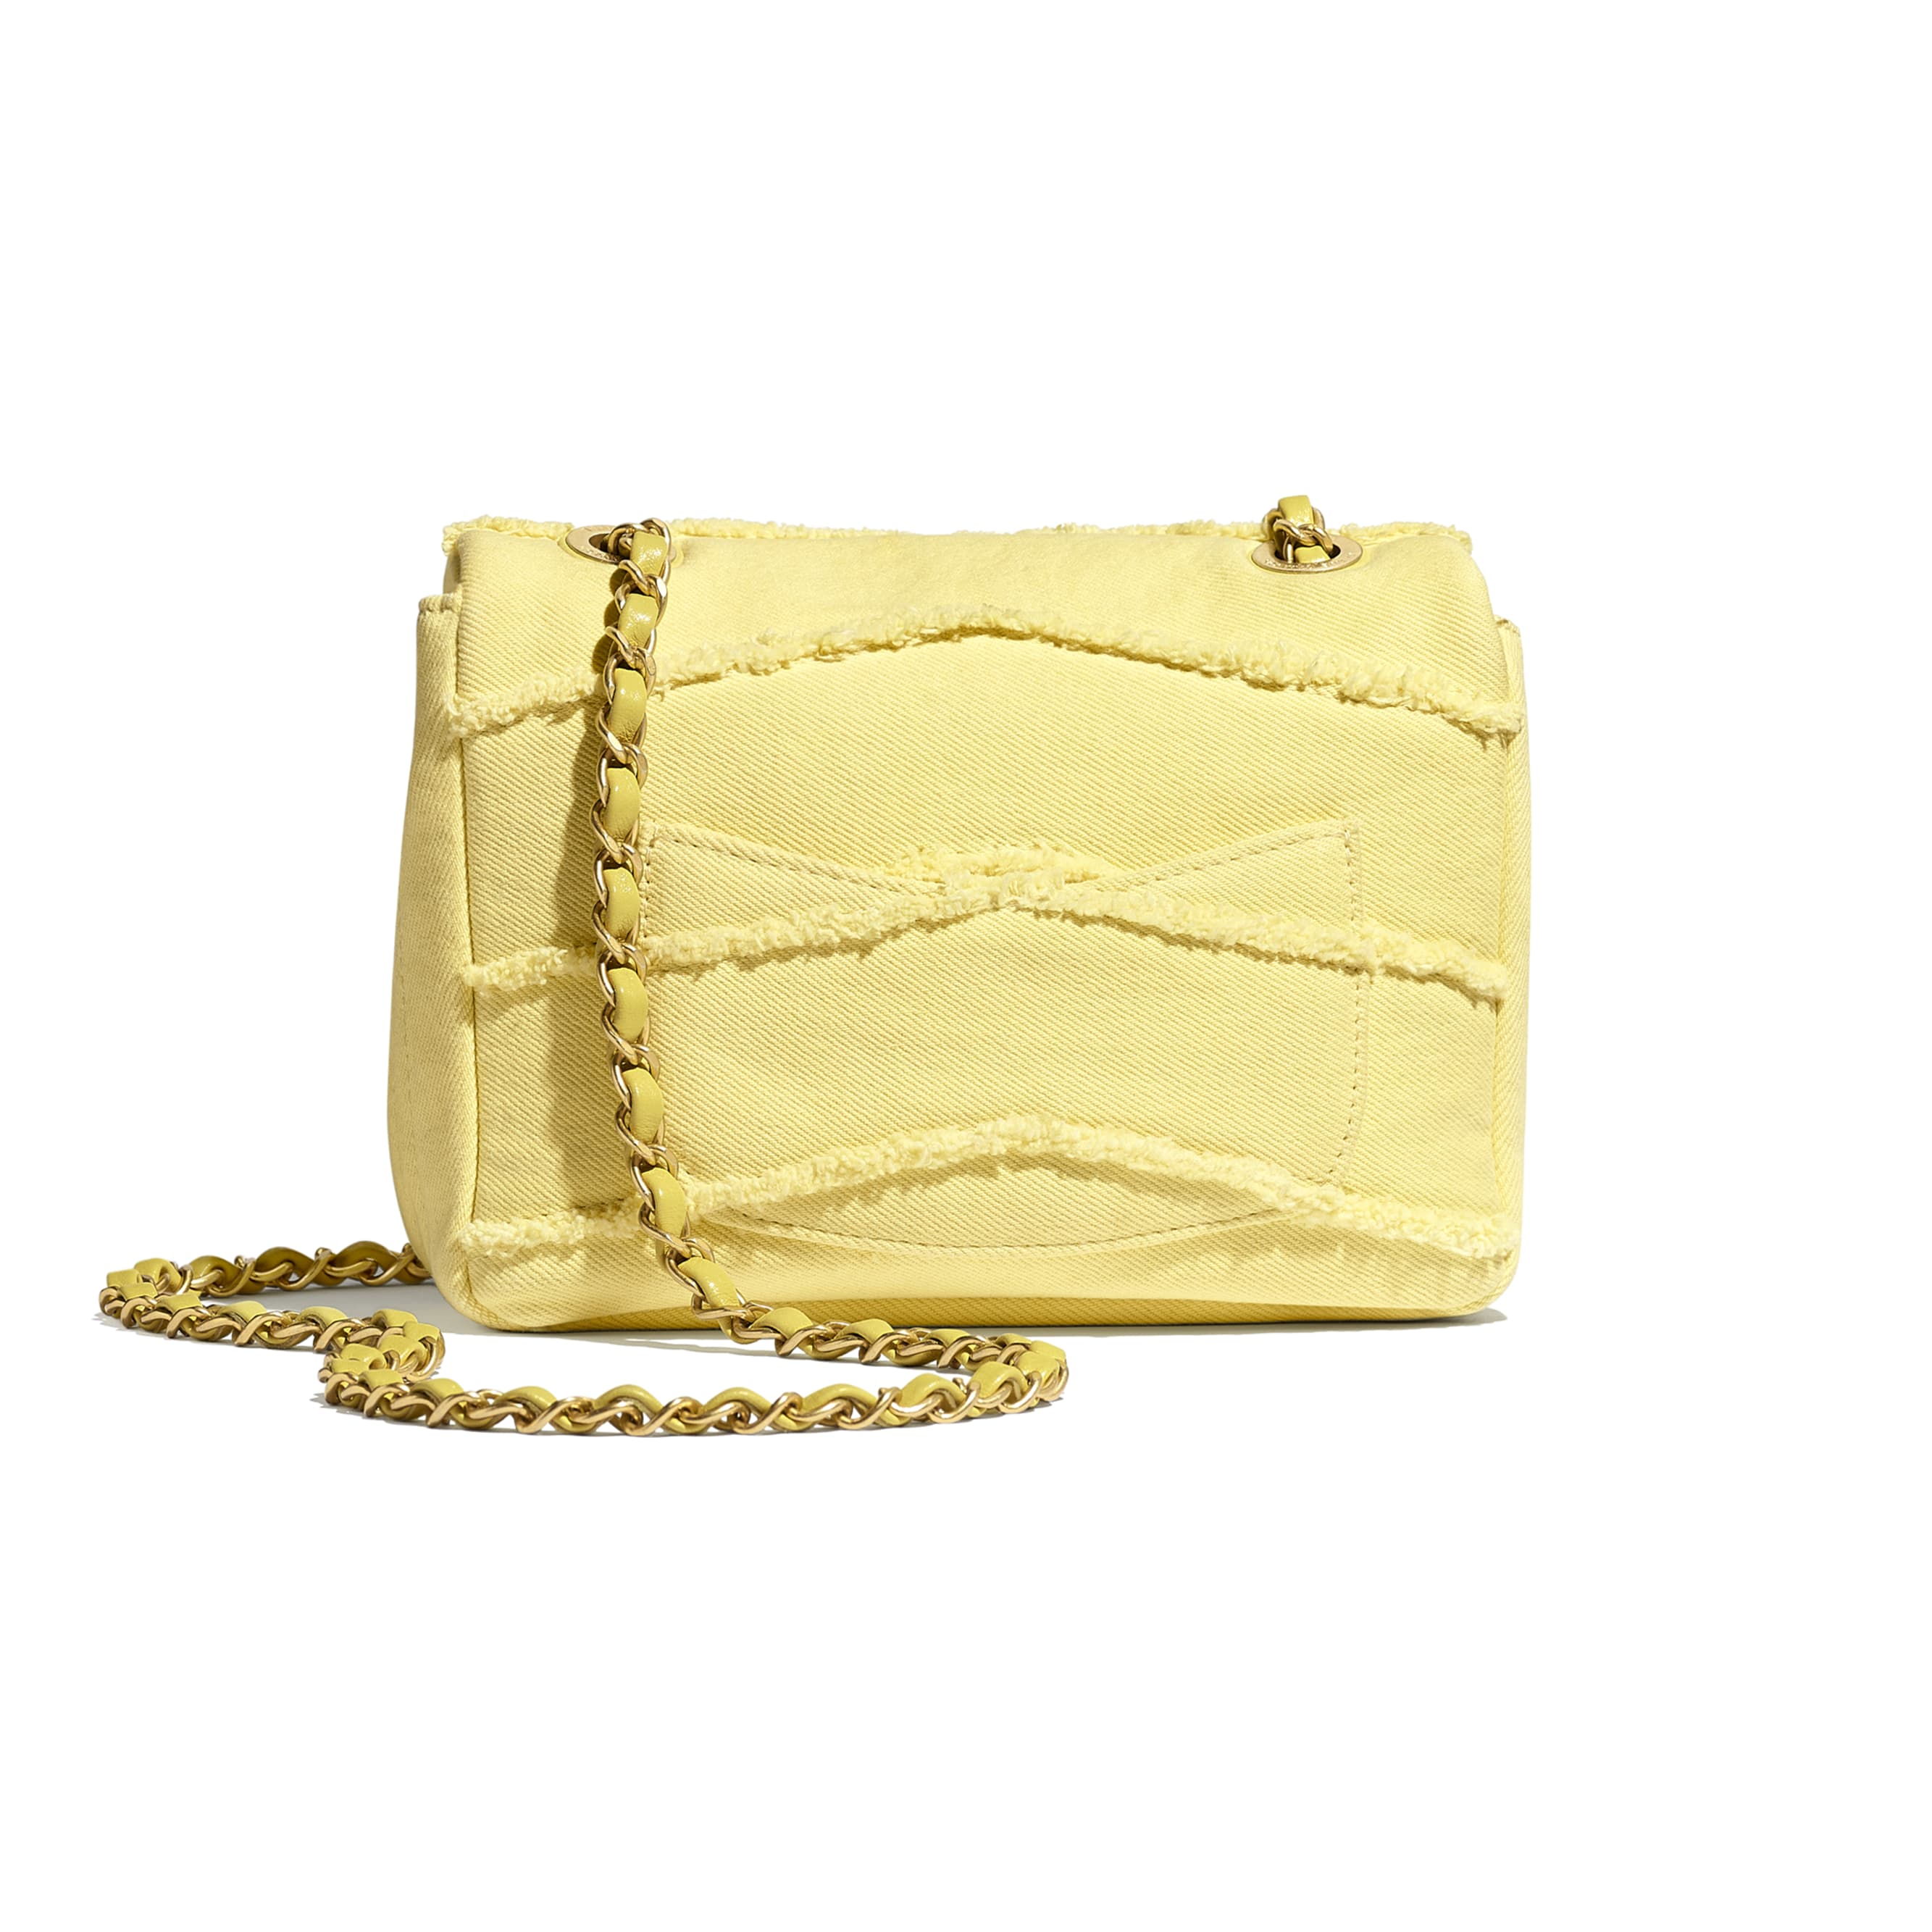 Small Flap Bag - Yellow - Denim & Gold-Tone Metal - CHANEL - Alternative view - see standard sized version